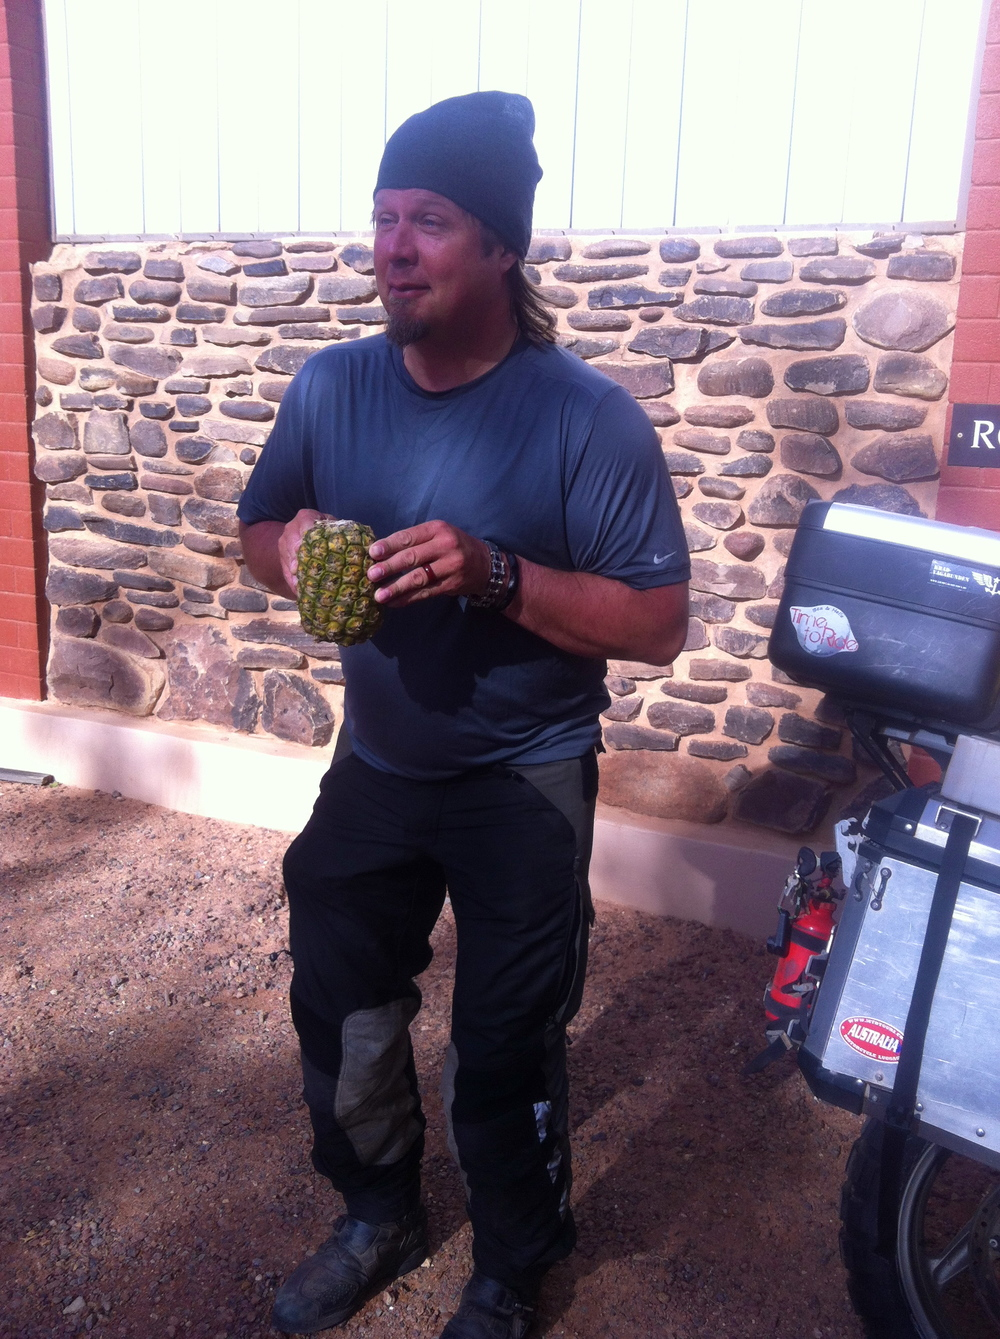 Packing up to leave Coober Pedy...We have our pineapple!